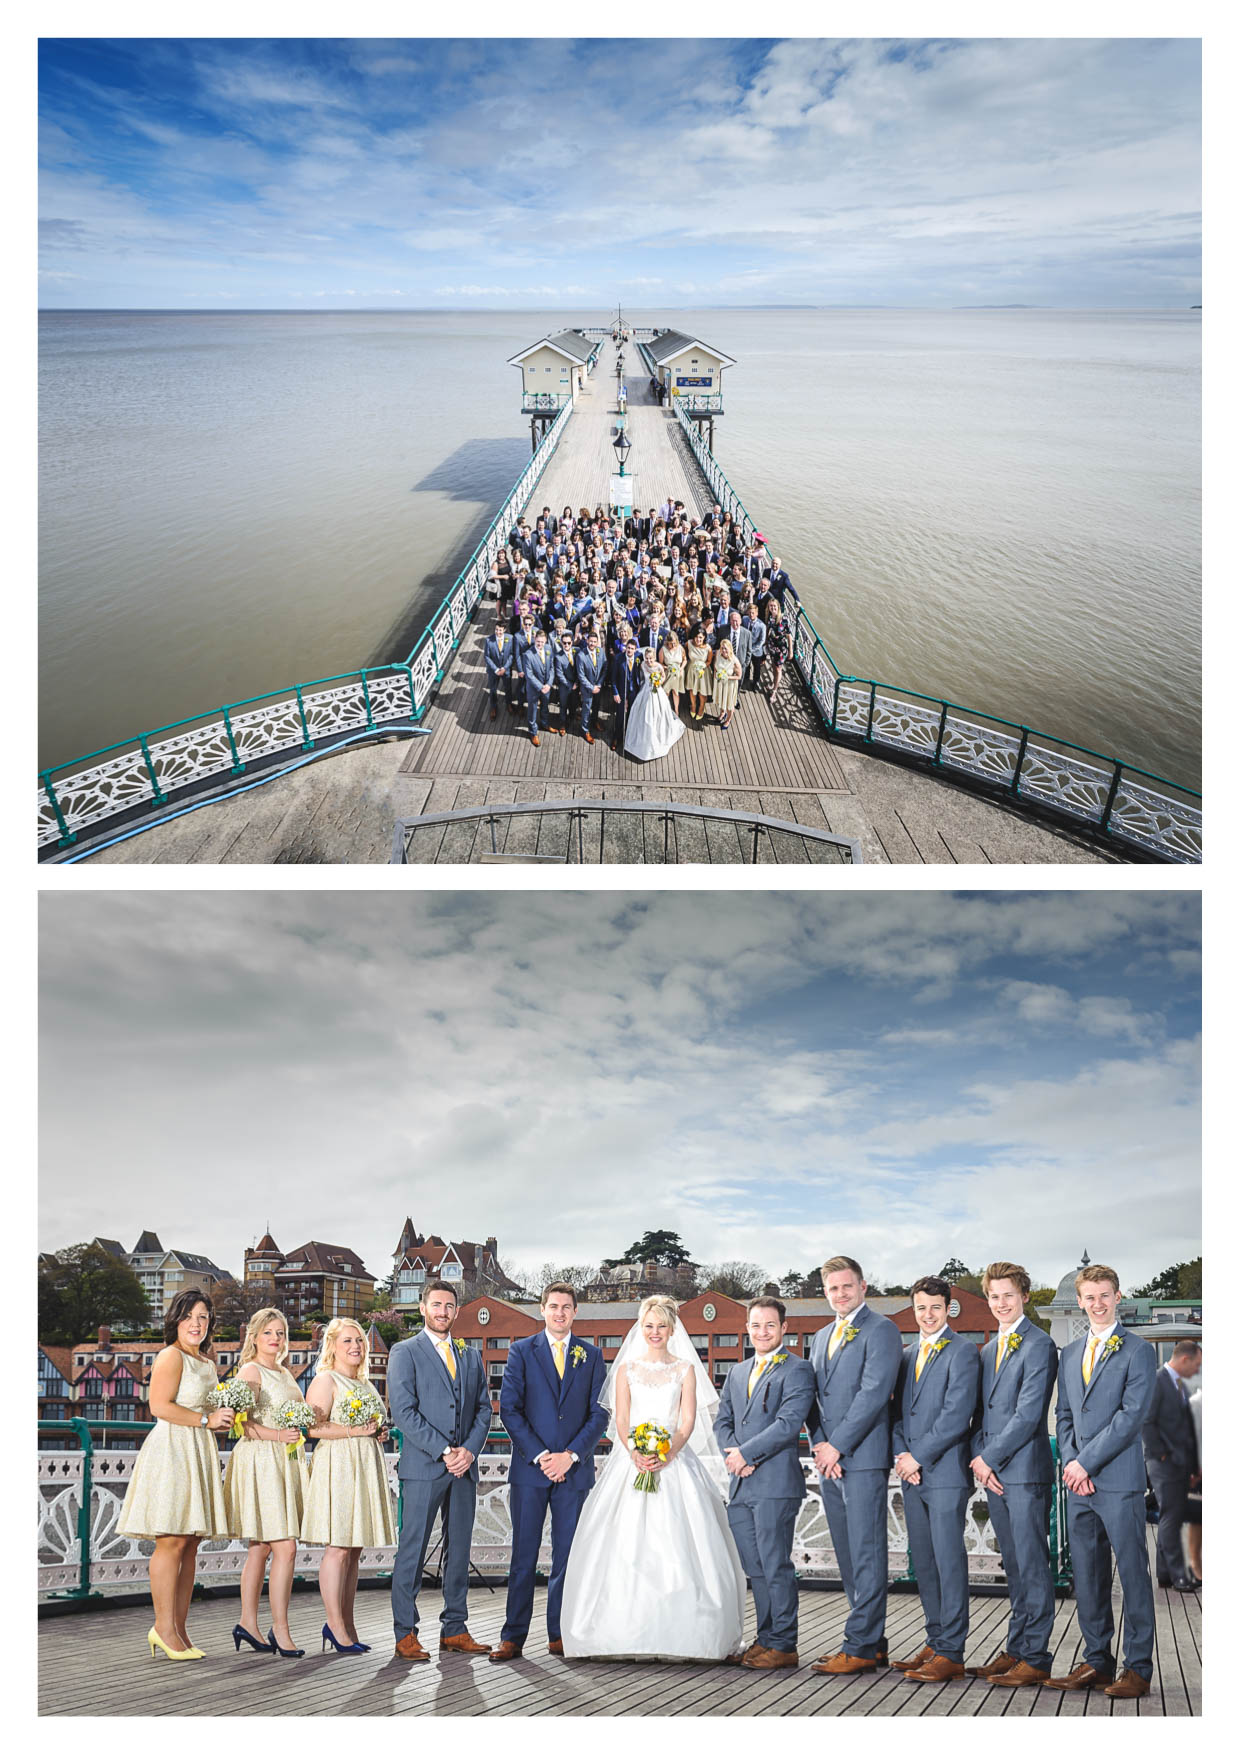 Bride and Groom at Penarth Pier Pavilion by Cardiff Wedding Photographers